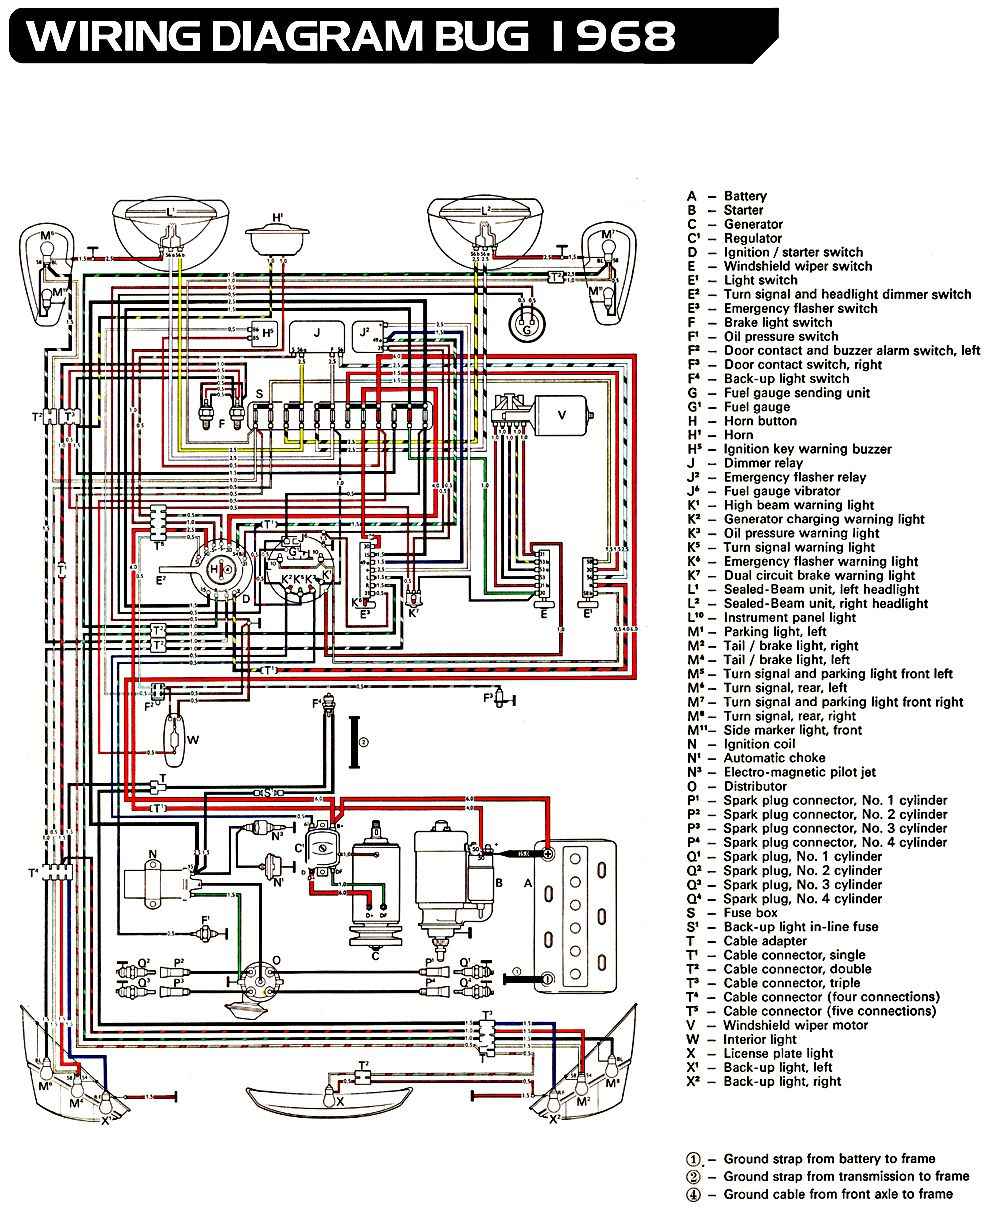 vw bug ignition wiring diagram 73 vw wiring diagram free vw vw bug wiring diagram 2004 vw bug wiring diagram [ 996 x 1211 Pixel ]